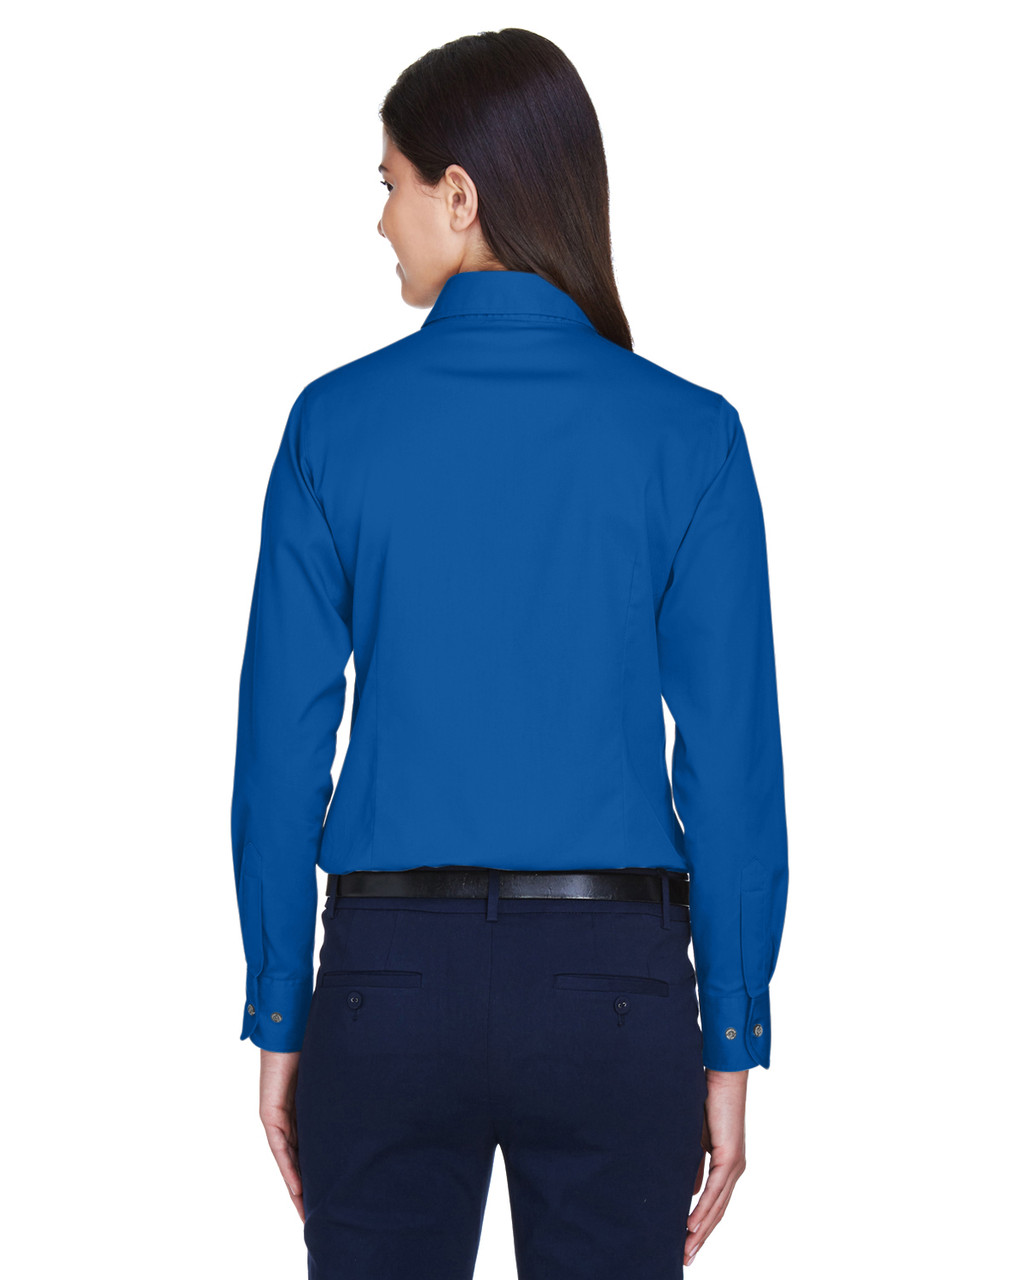 French Blue - Back, M500W Harriton Easy Blend Long-Sleeve Twill Shirt with Stain-Release | BlankClothing.ca